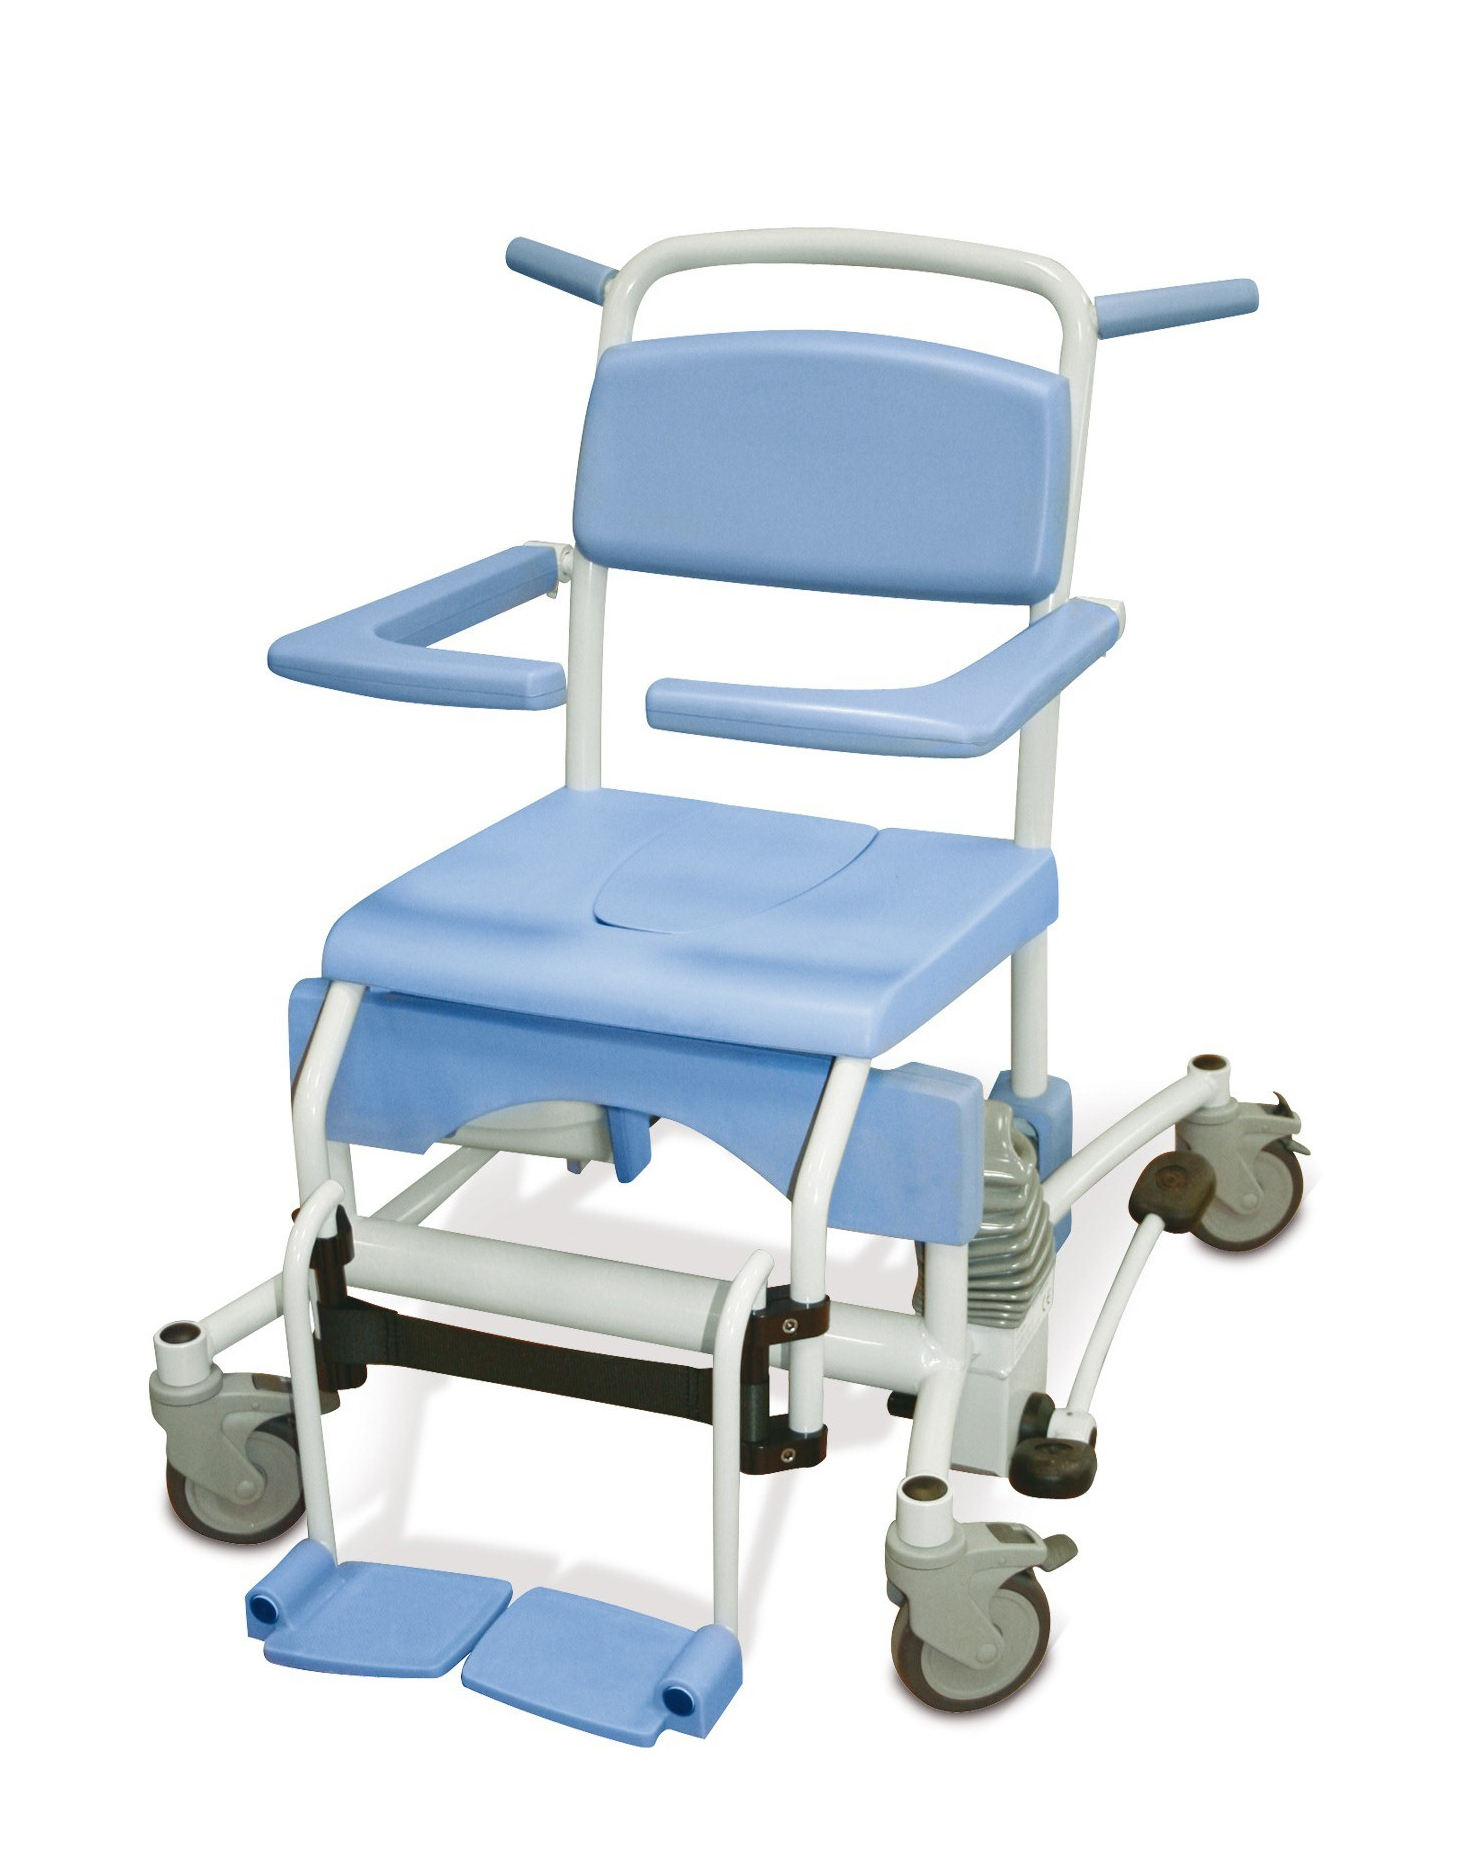 Flexo Shower-Toilet Chair - Caretua Ltd